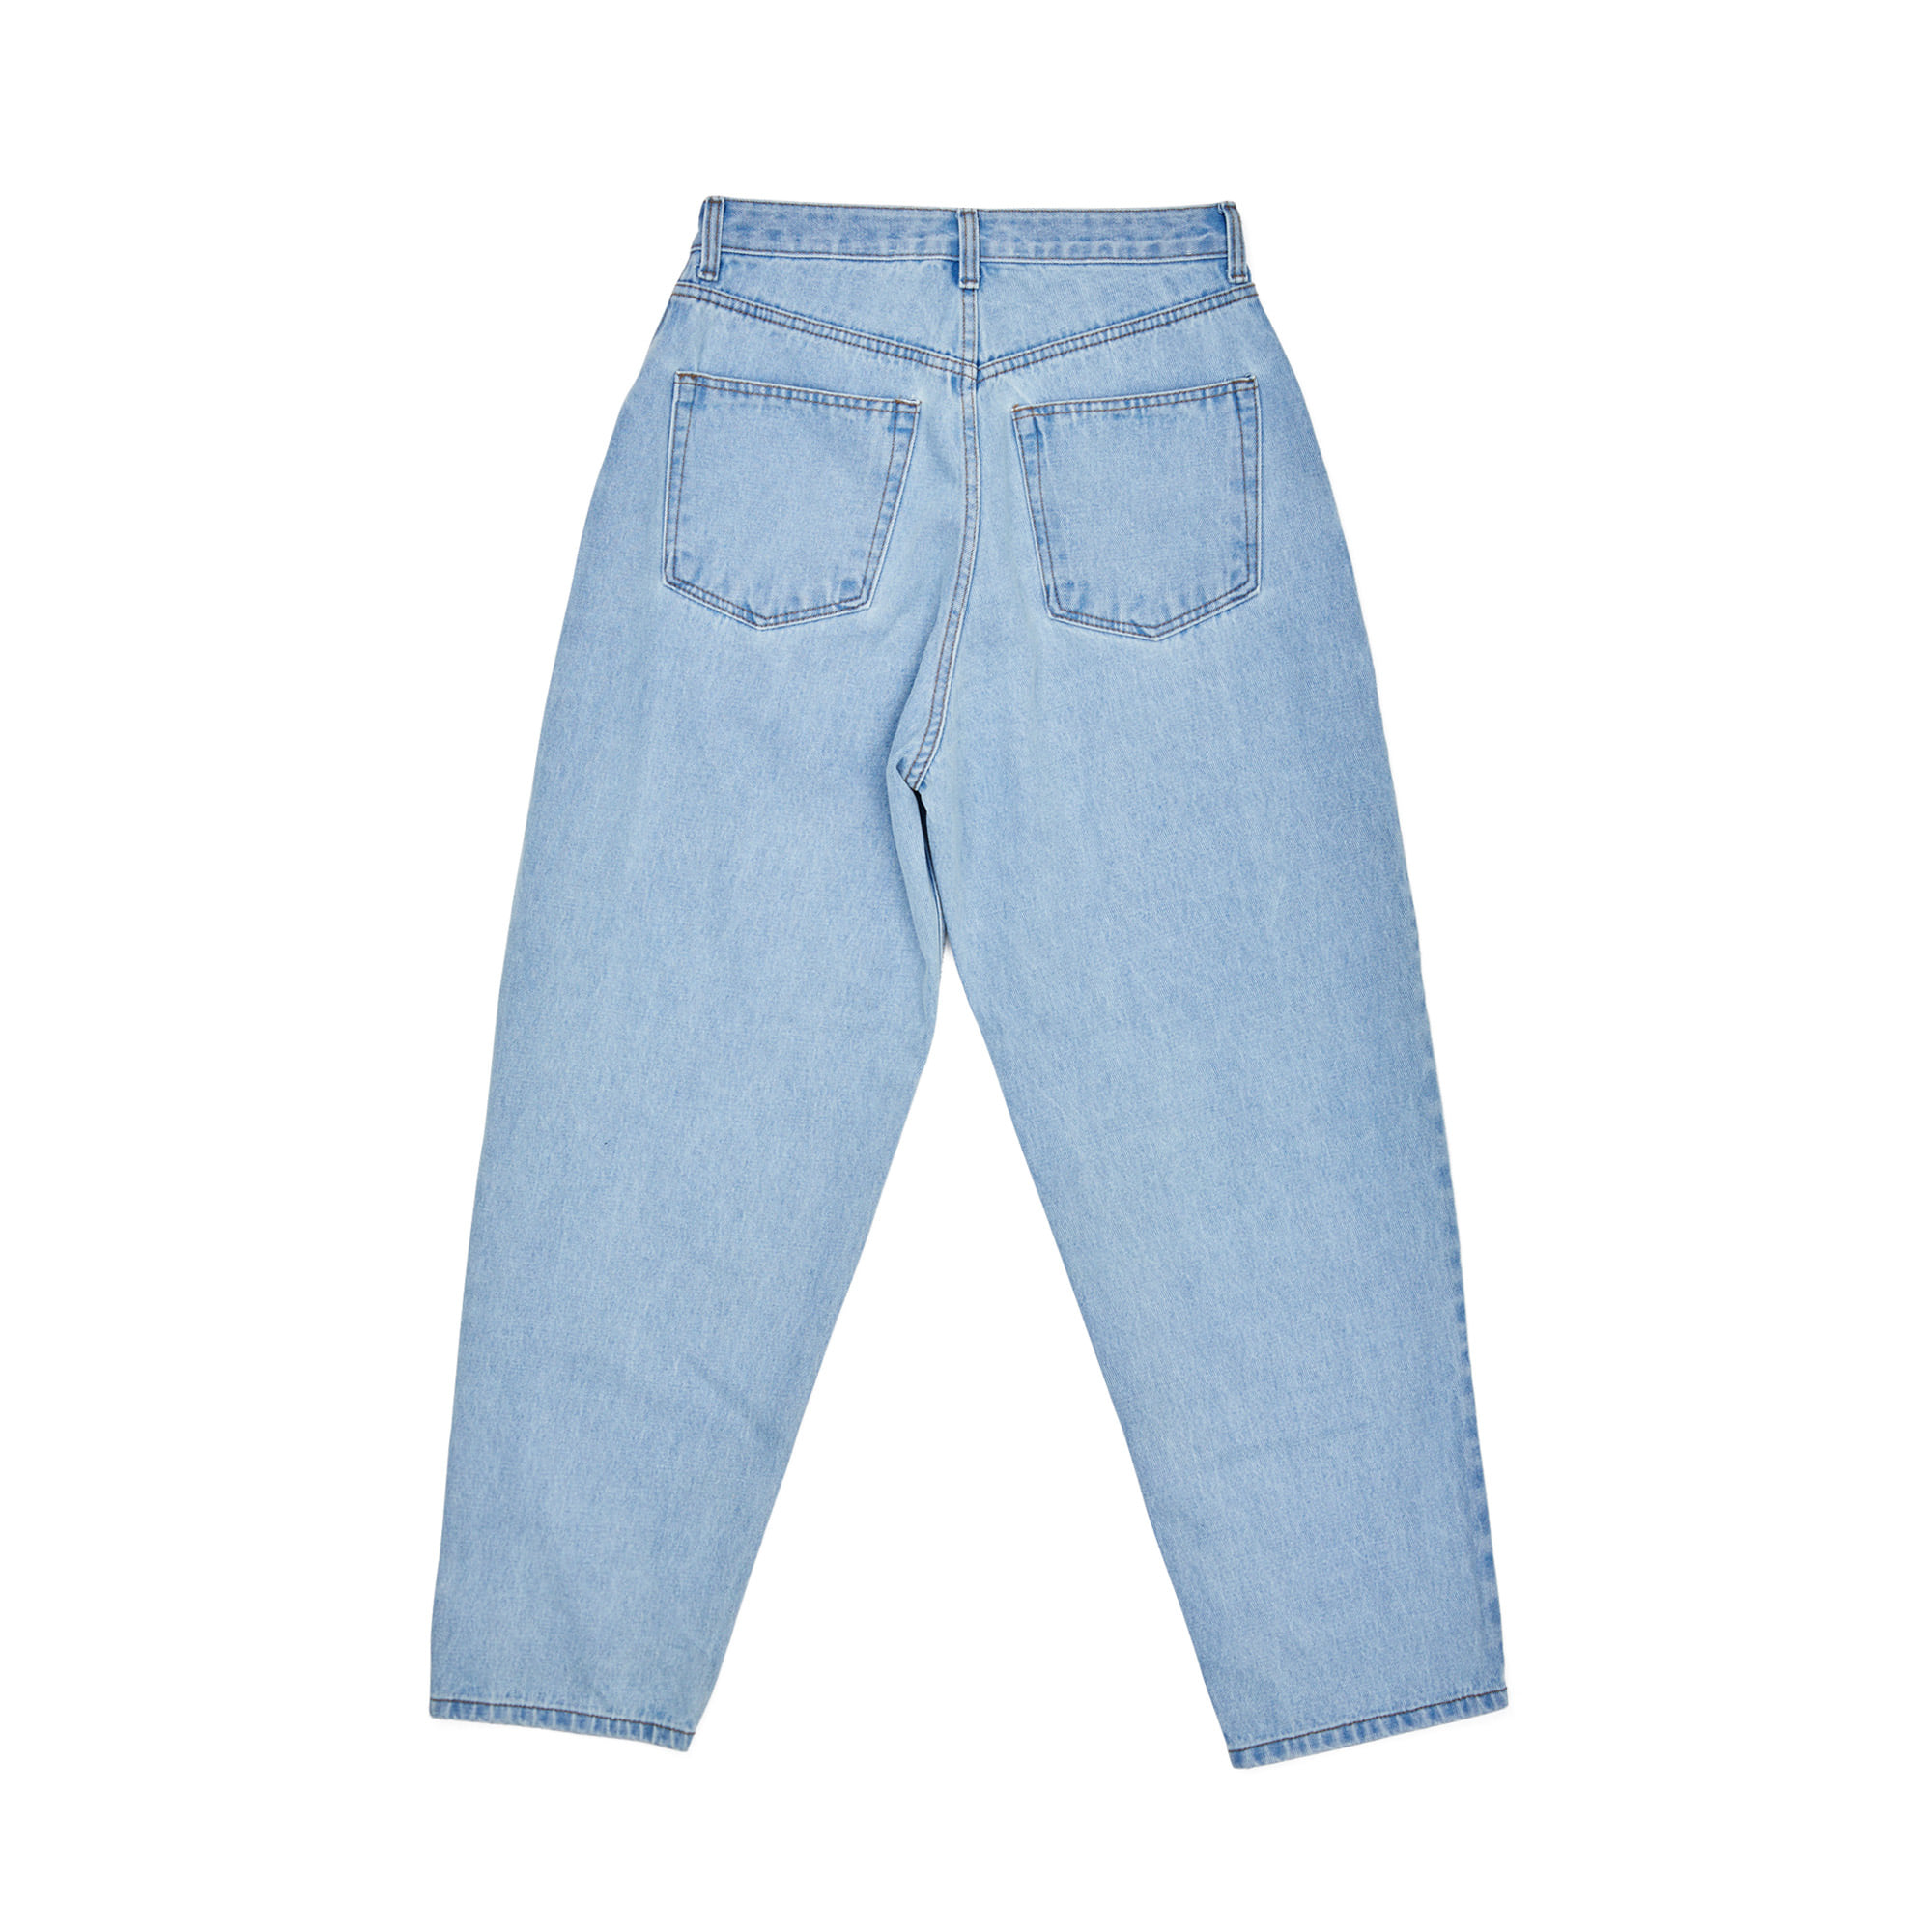 BSRABBIT BS MID90S LOOSE FIT BAGGY DENIM PANTS / LIGHTBLUE(anton)